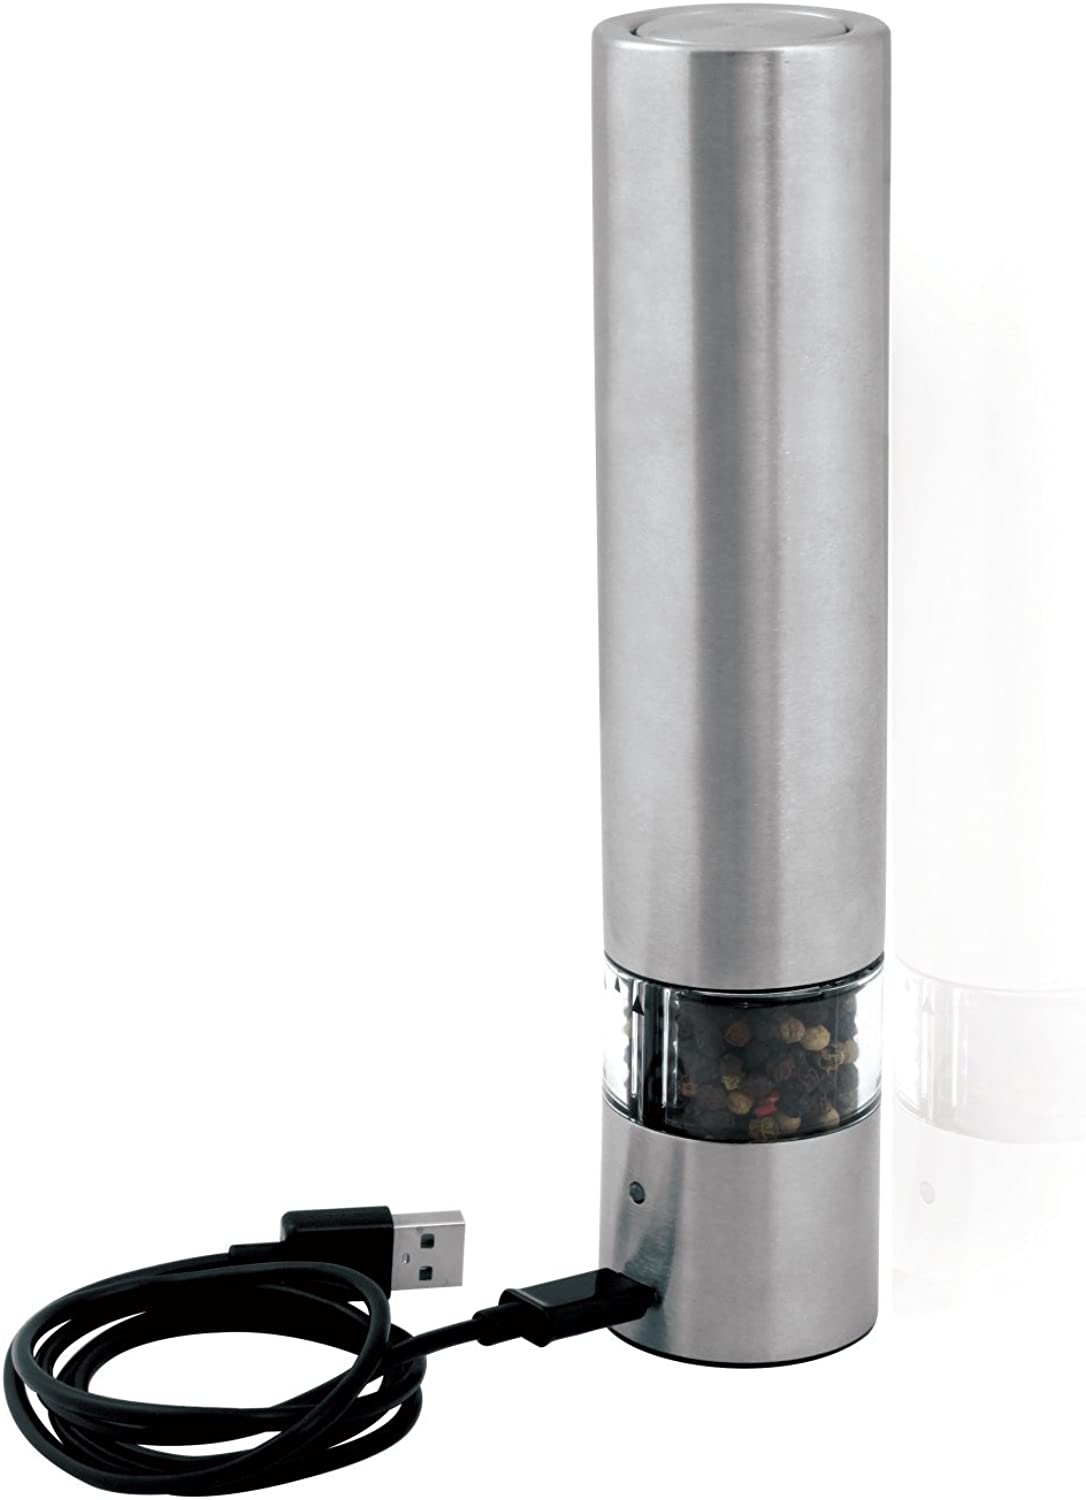 Cole & Mason Rechargeable Electric Salt and Pepper Grinder - Electronic, Battery Operated Mill, Stainless Steel